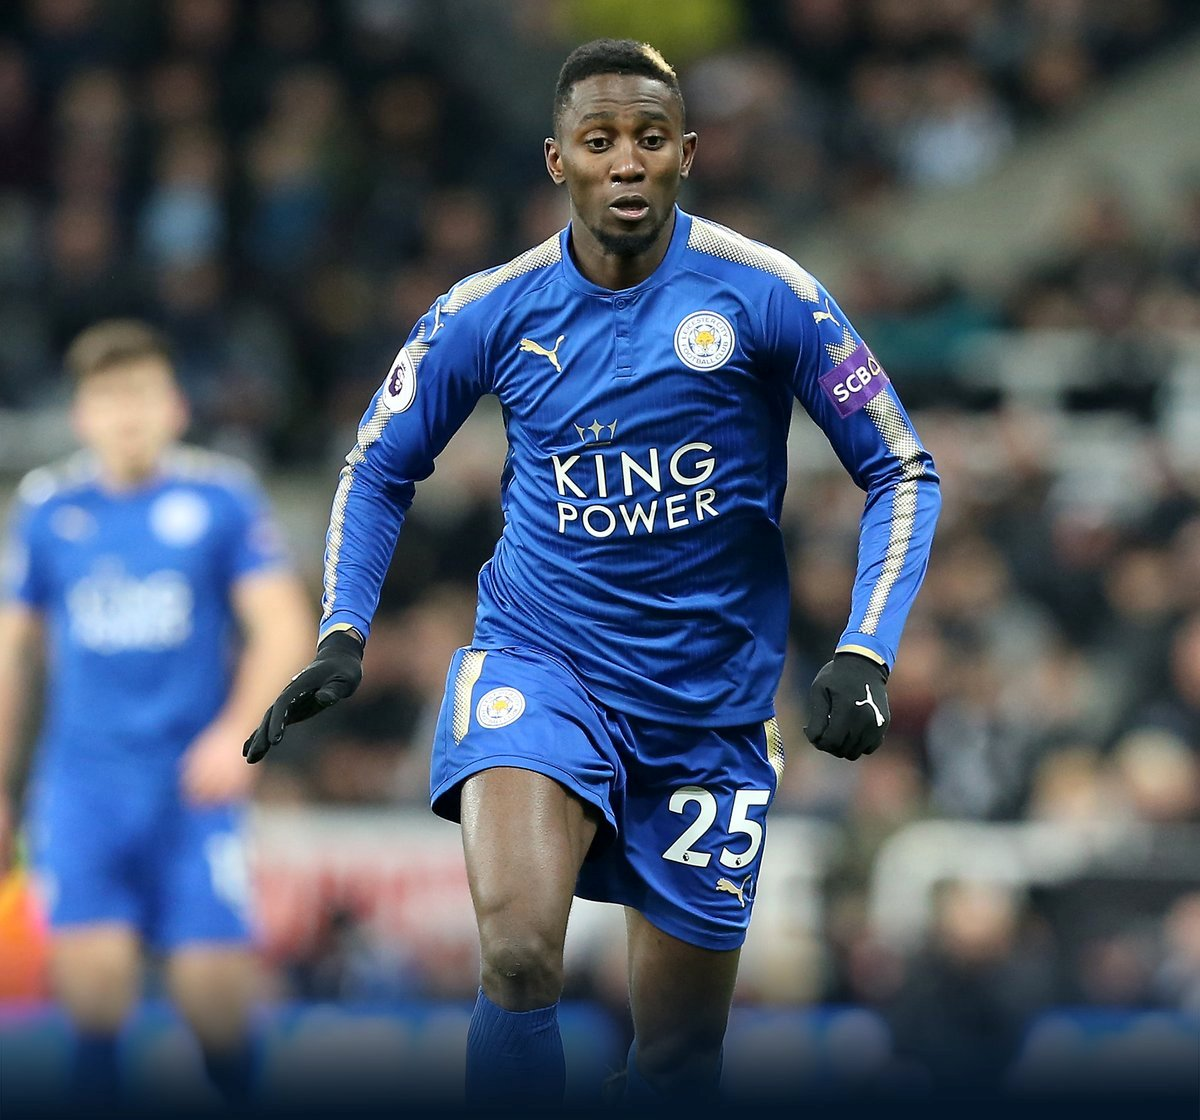 21 Facts About Wilfred Ndidi On His 21st Birthday